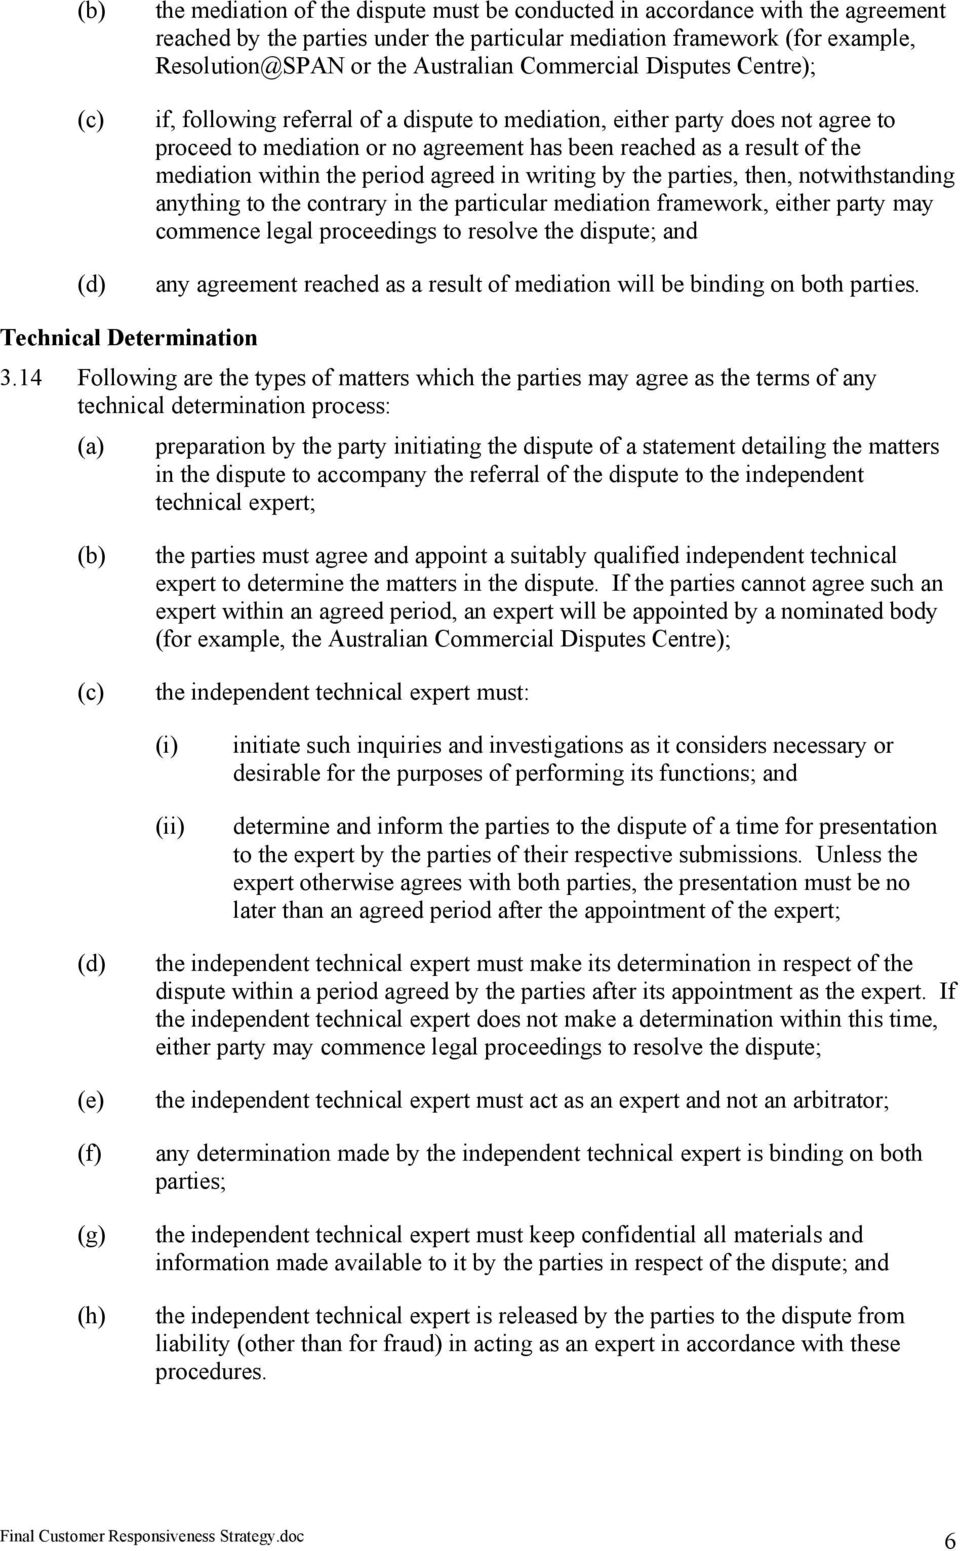 the period agreed in writing by the parties, then, notwithstanding anything to the contrary in the particular mediation framework, either party may commence legal proceedings to resolve the dispute;